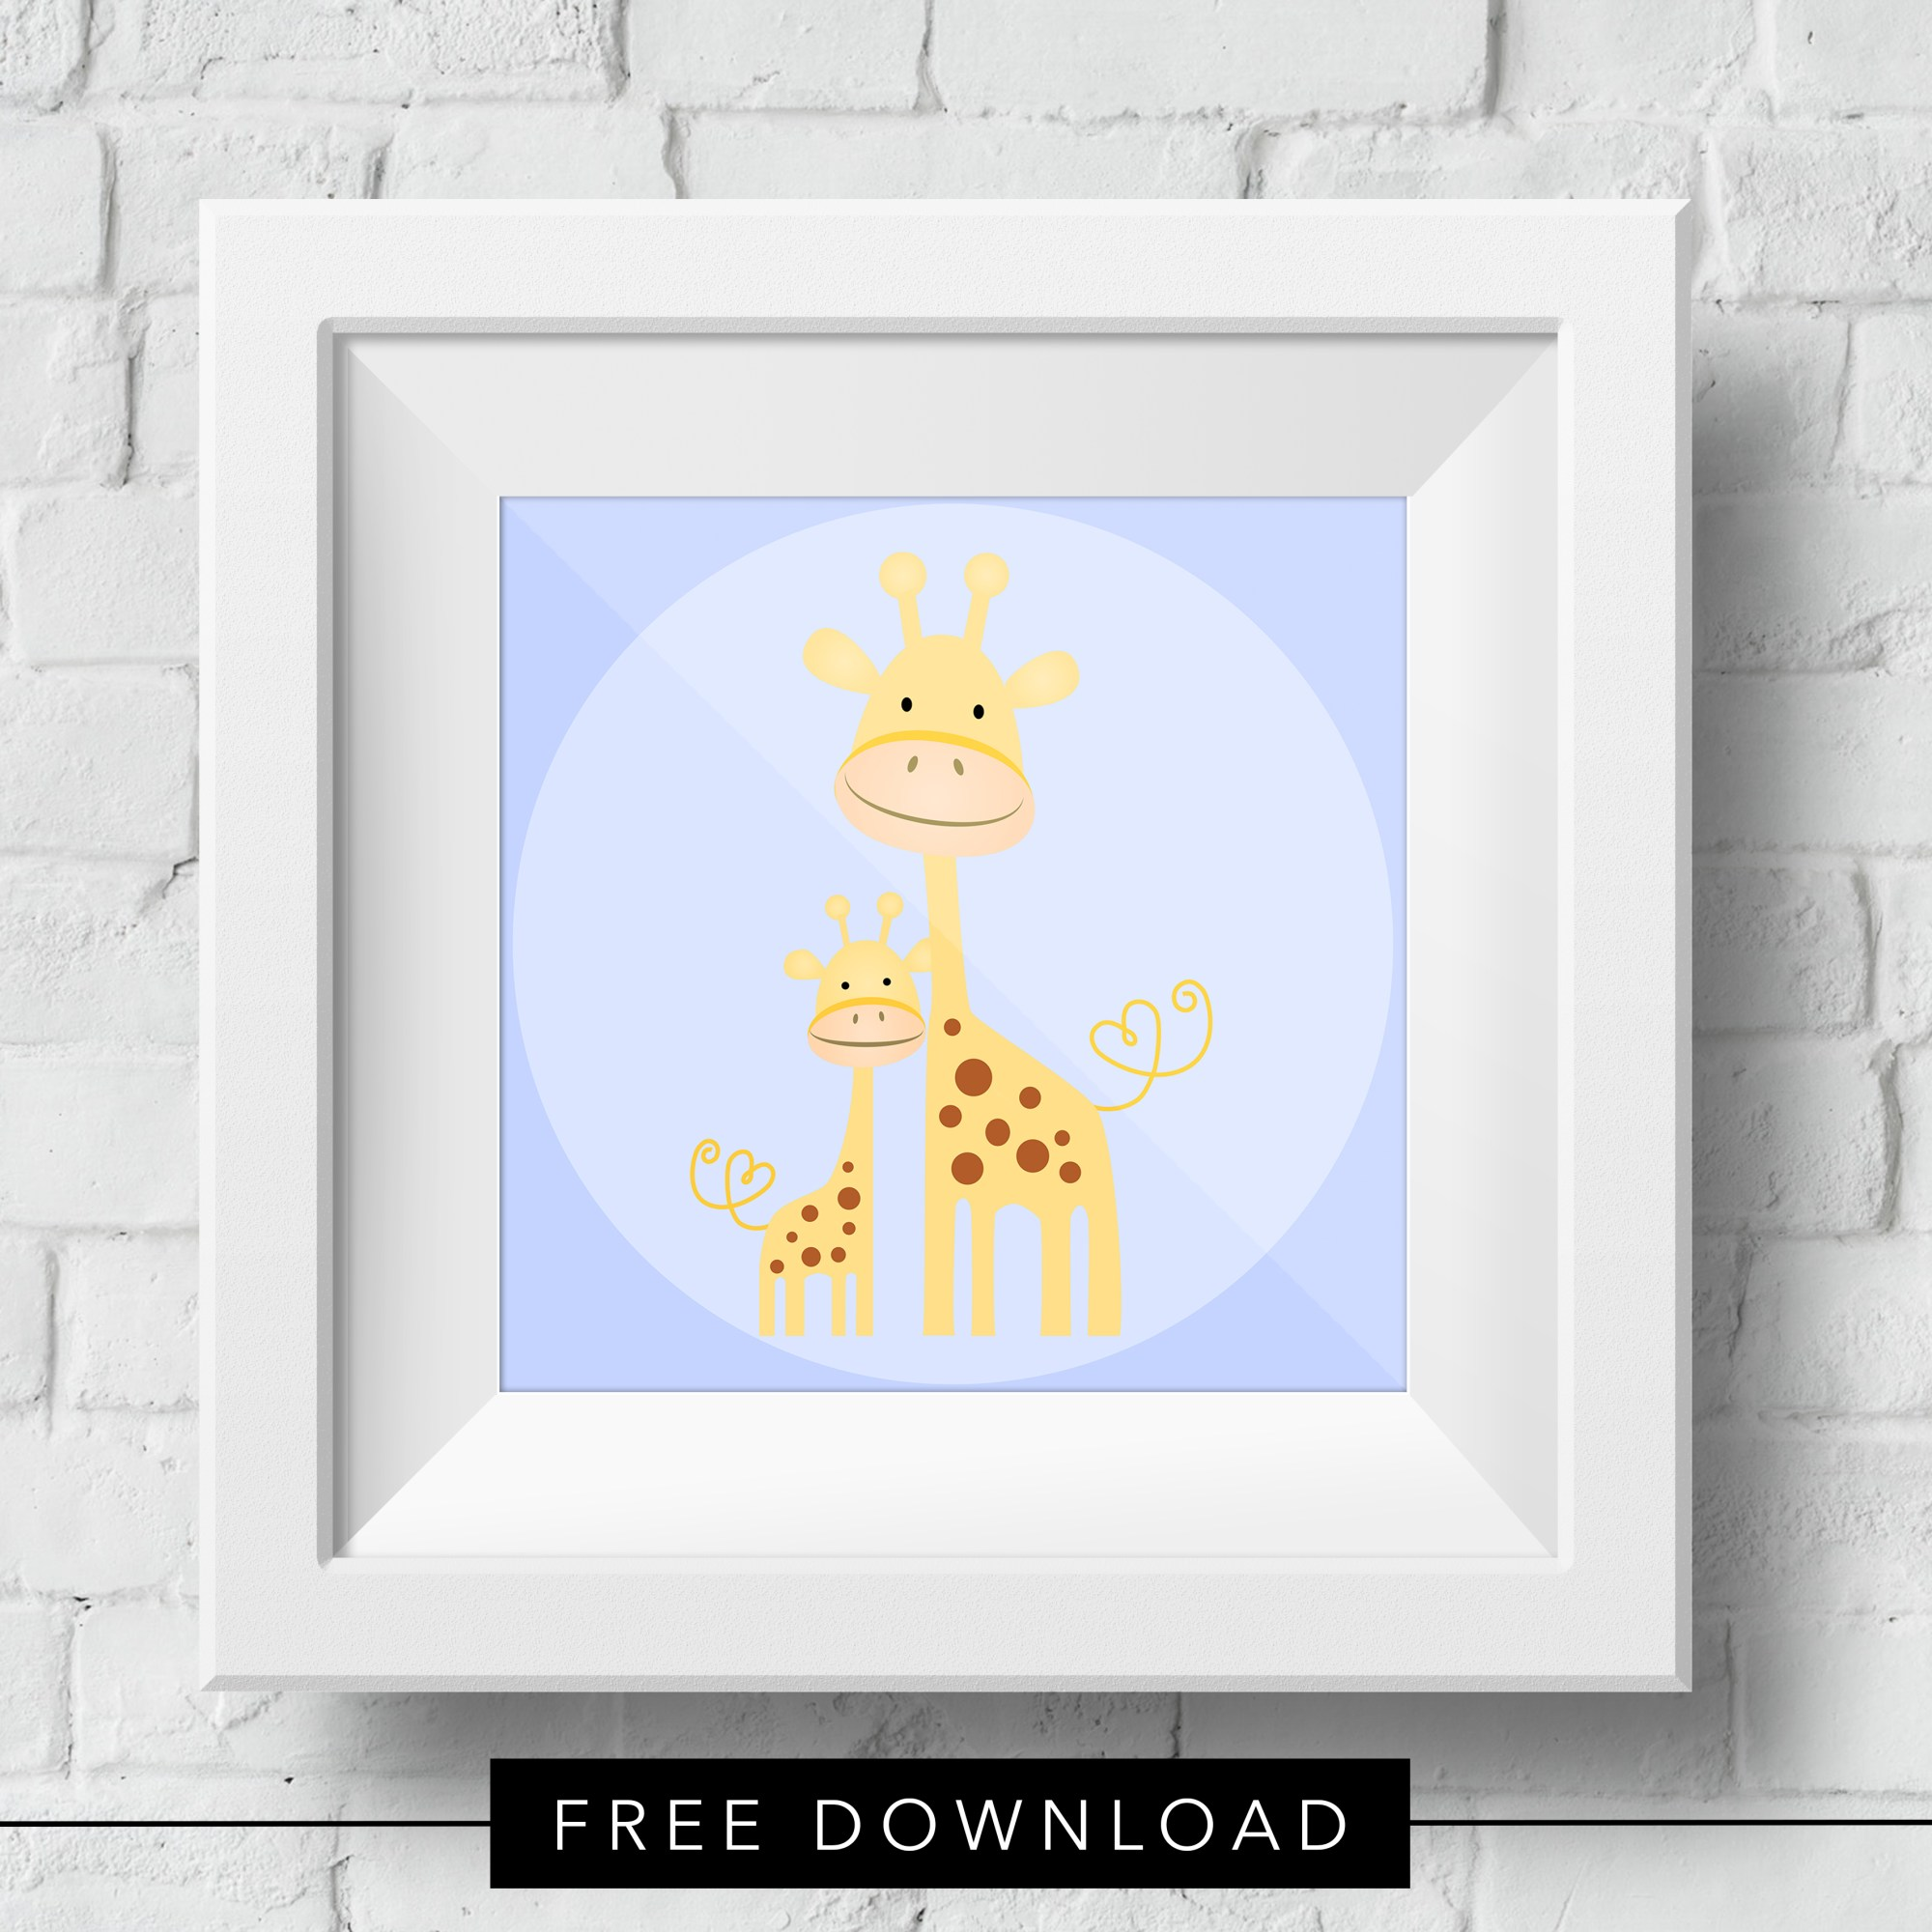 baby-giraffe-free-download